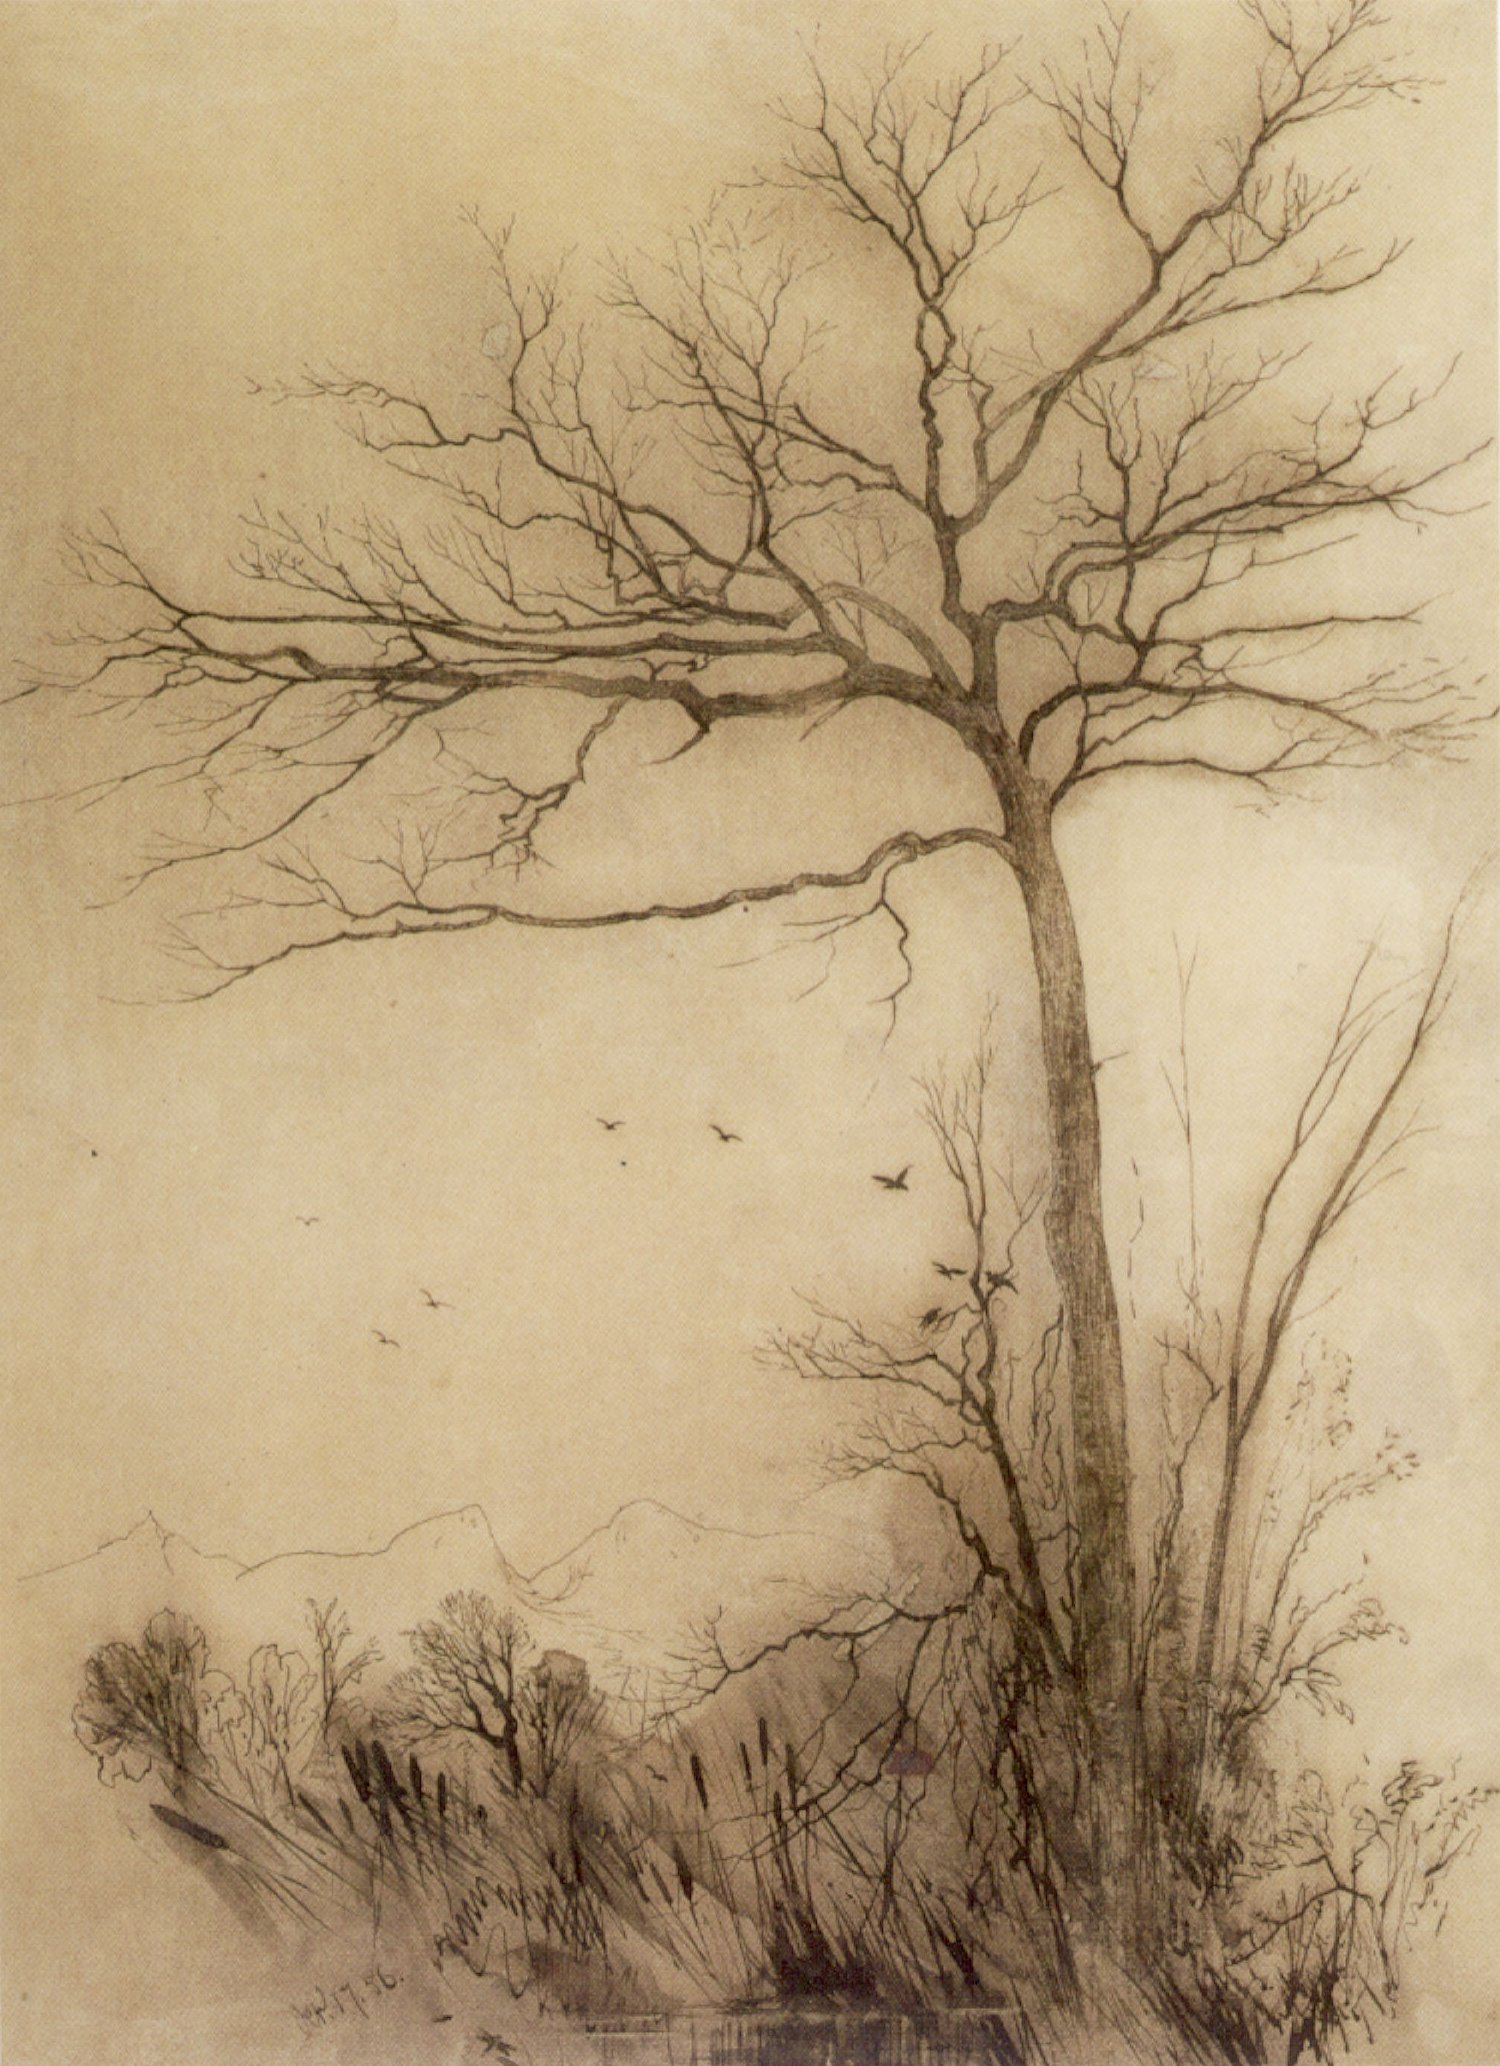 Ink Artist And Pen Tree